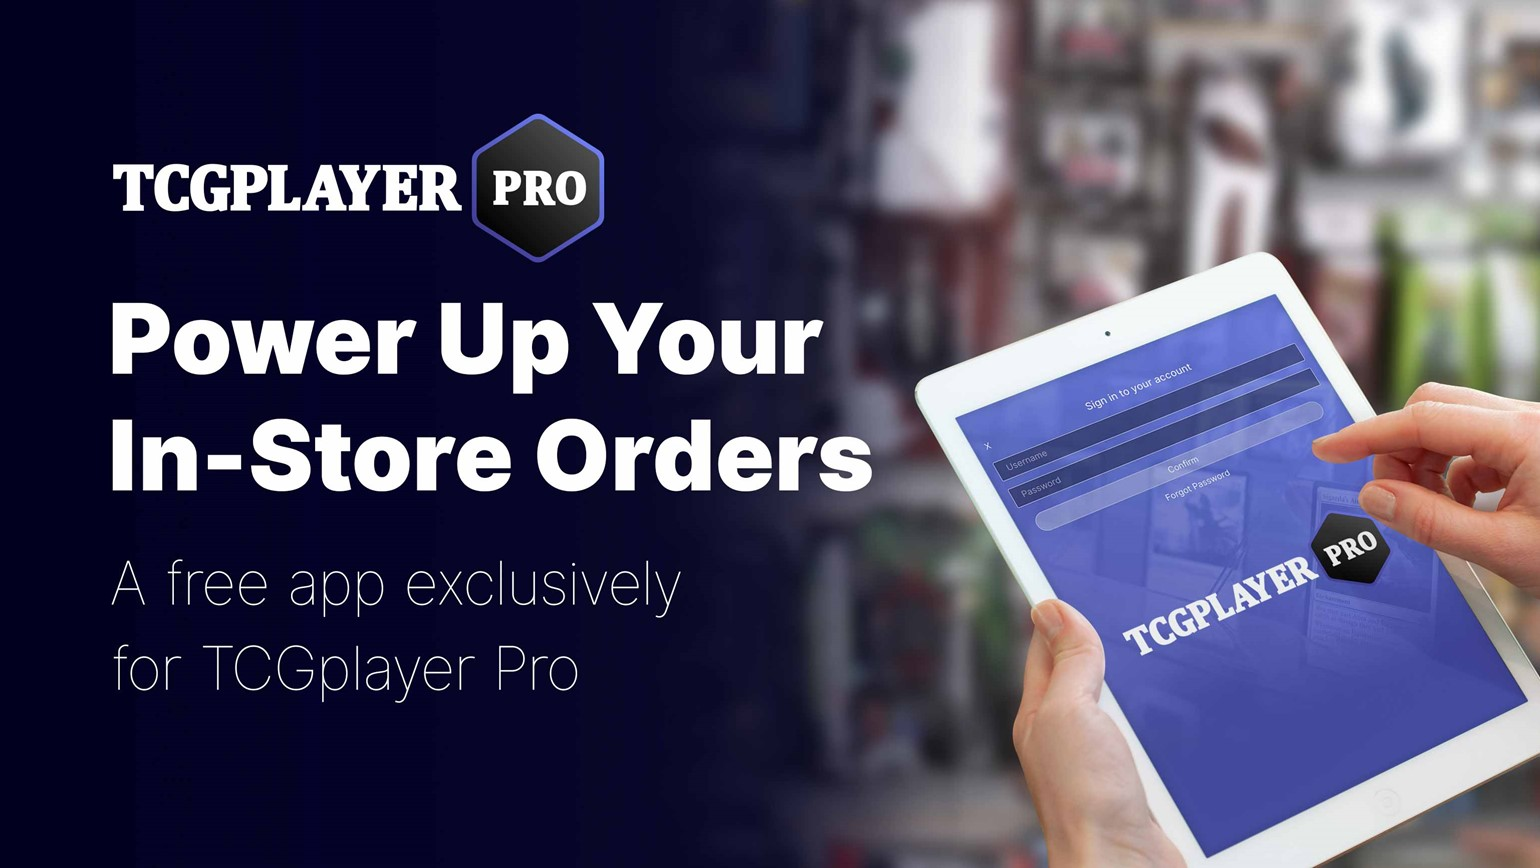 Power Up Your In-Store Orders with the Free TCGplayer Pro Retail App for iOS